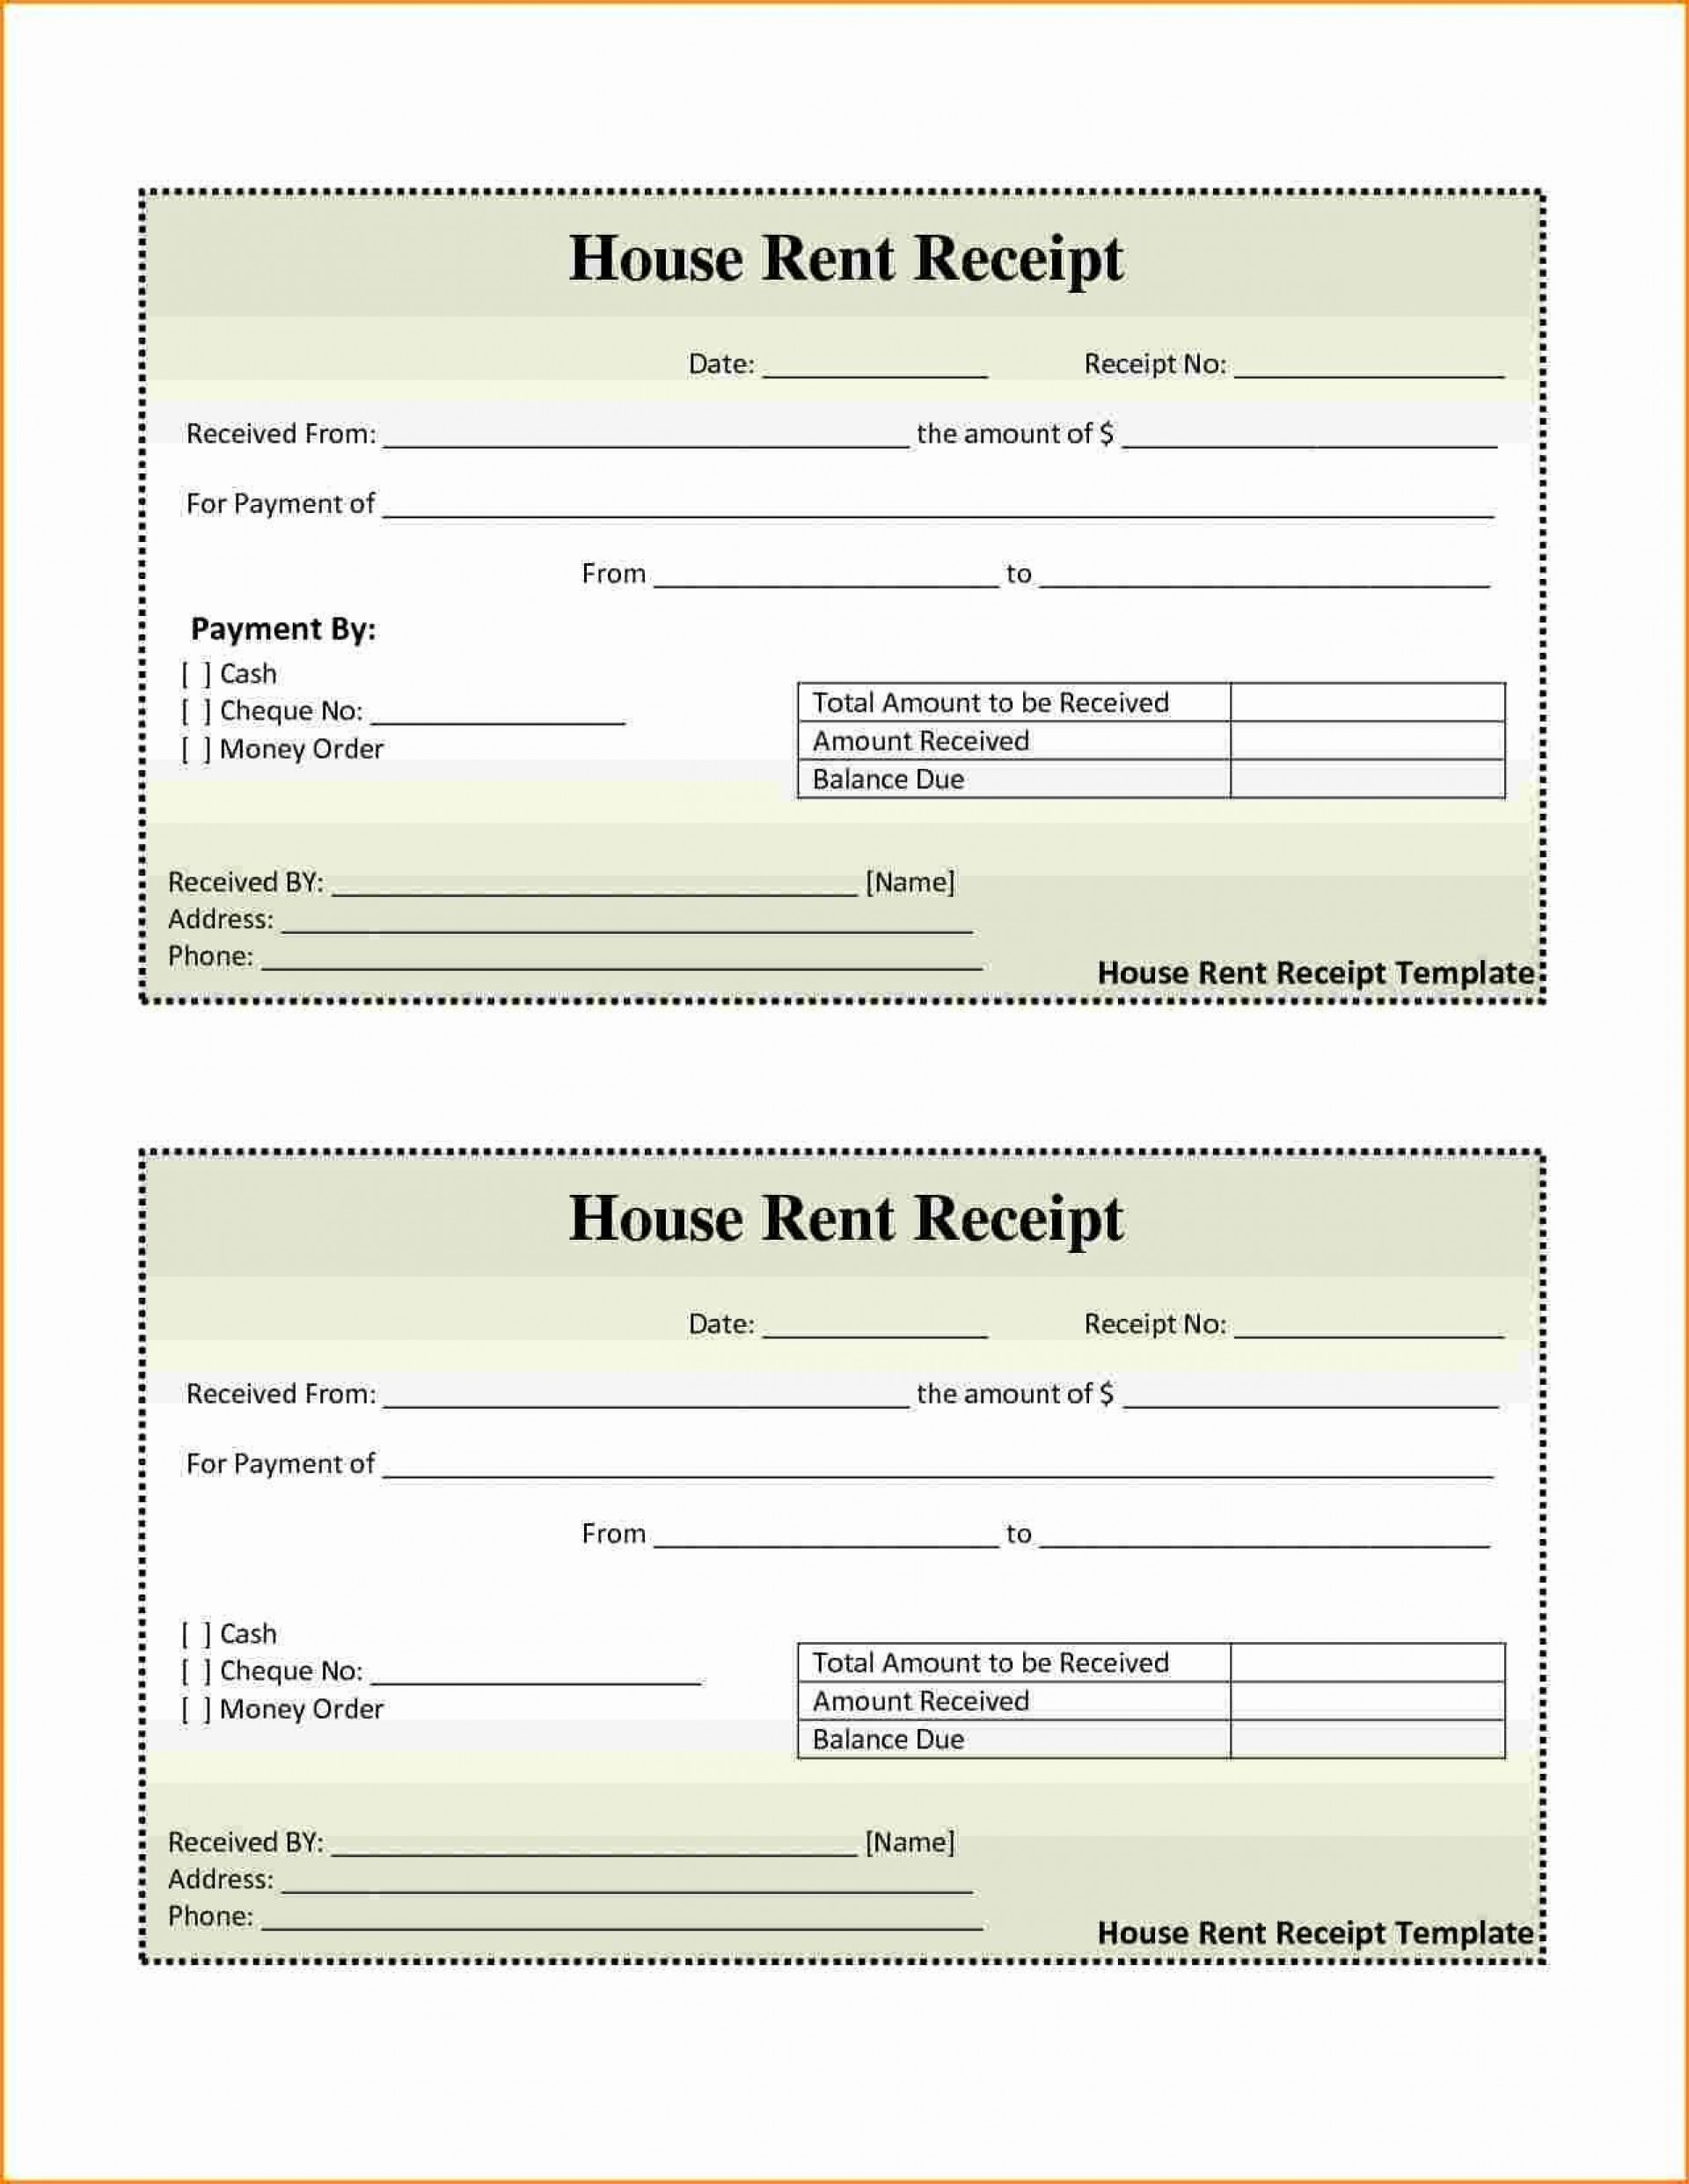 001 Awesome House Rent Receipt Sample Doc Idea  Template Word Document Free Download Format For Income Tax1920